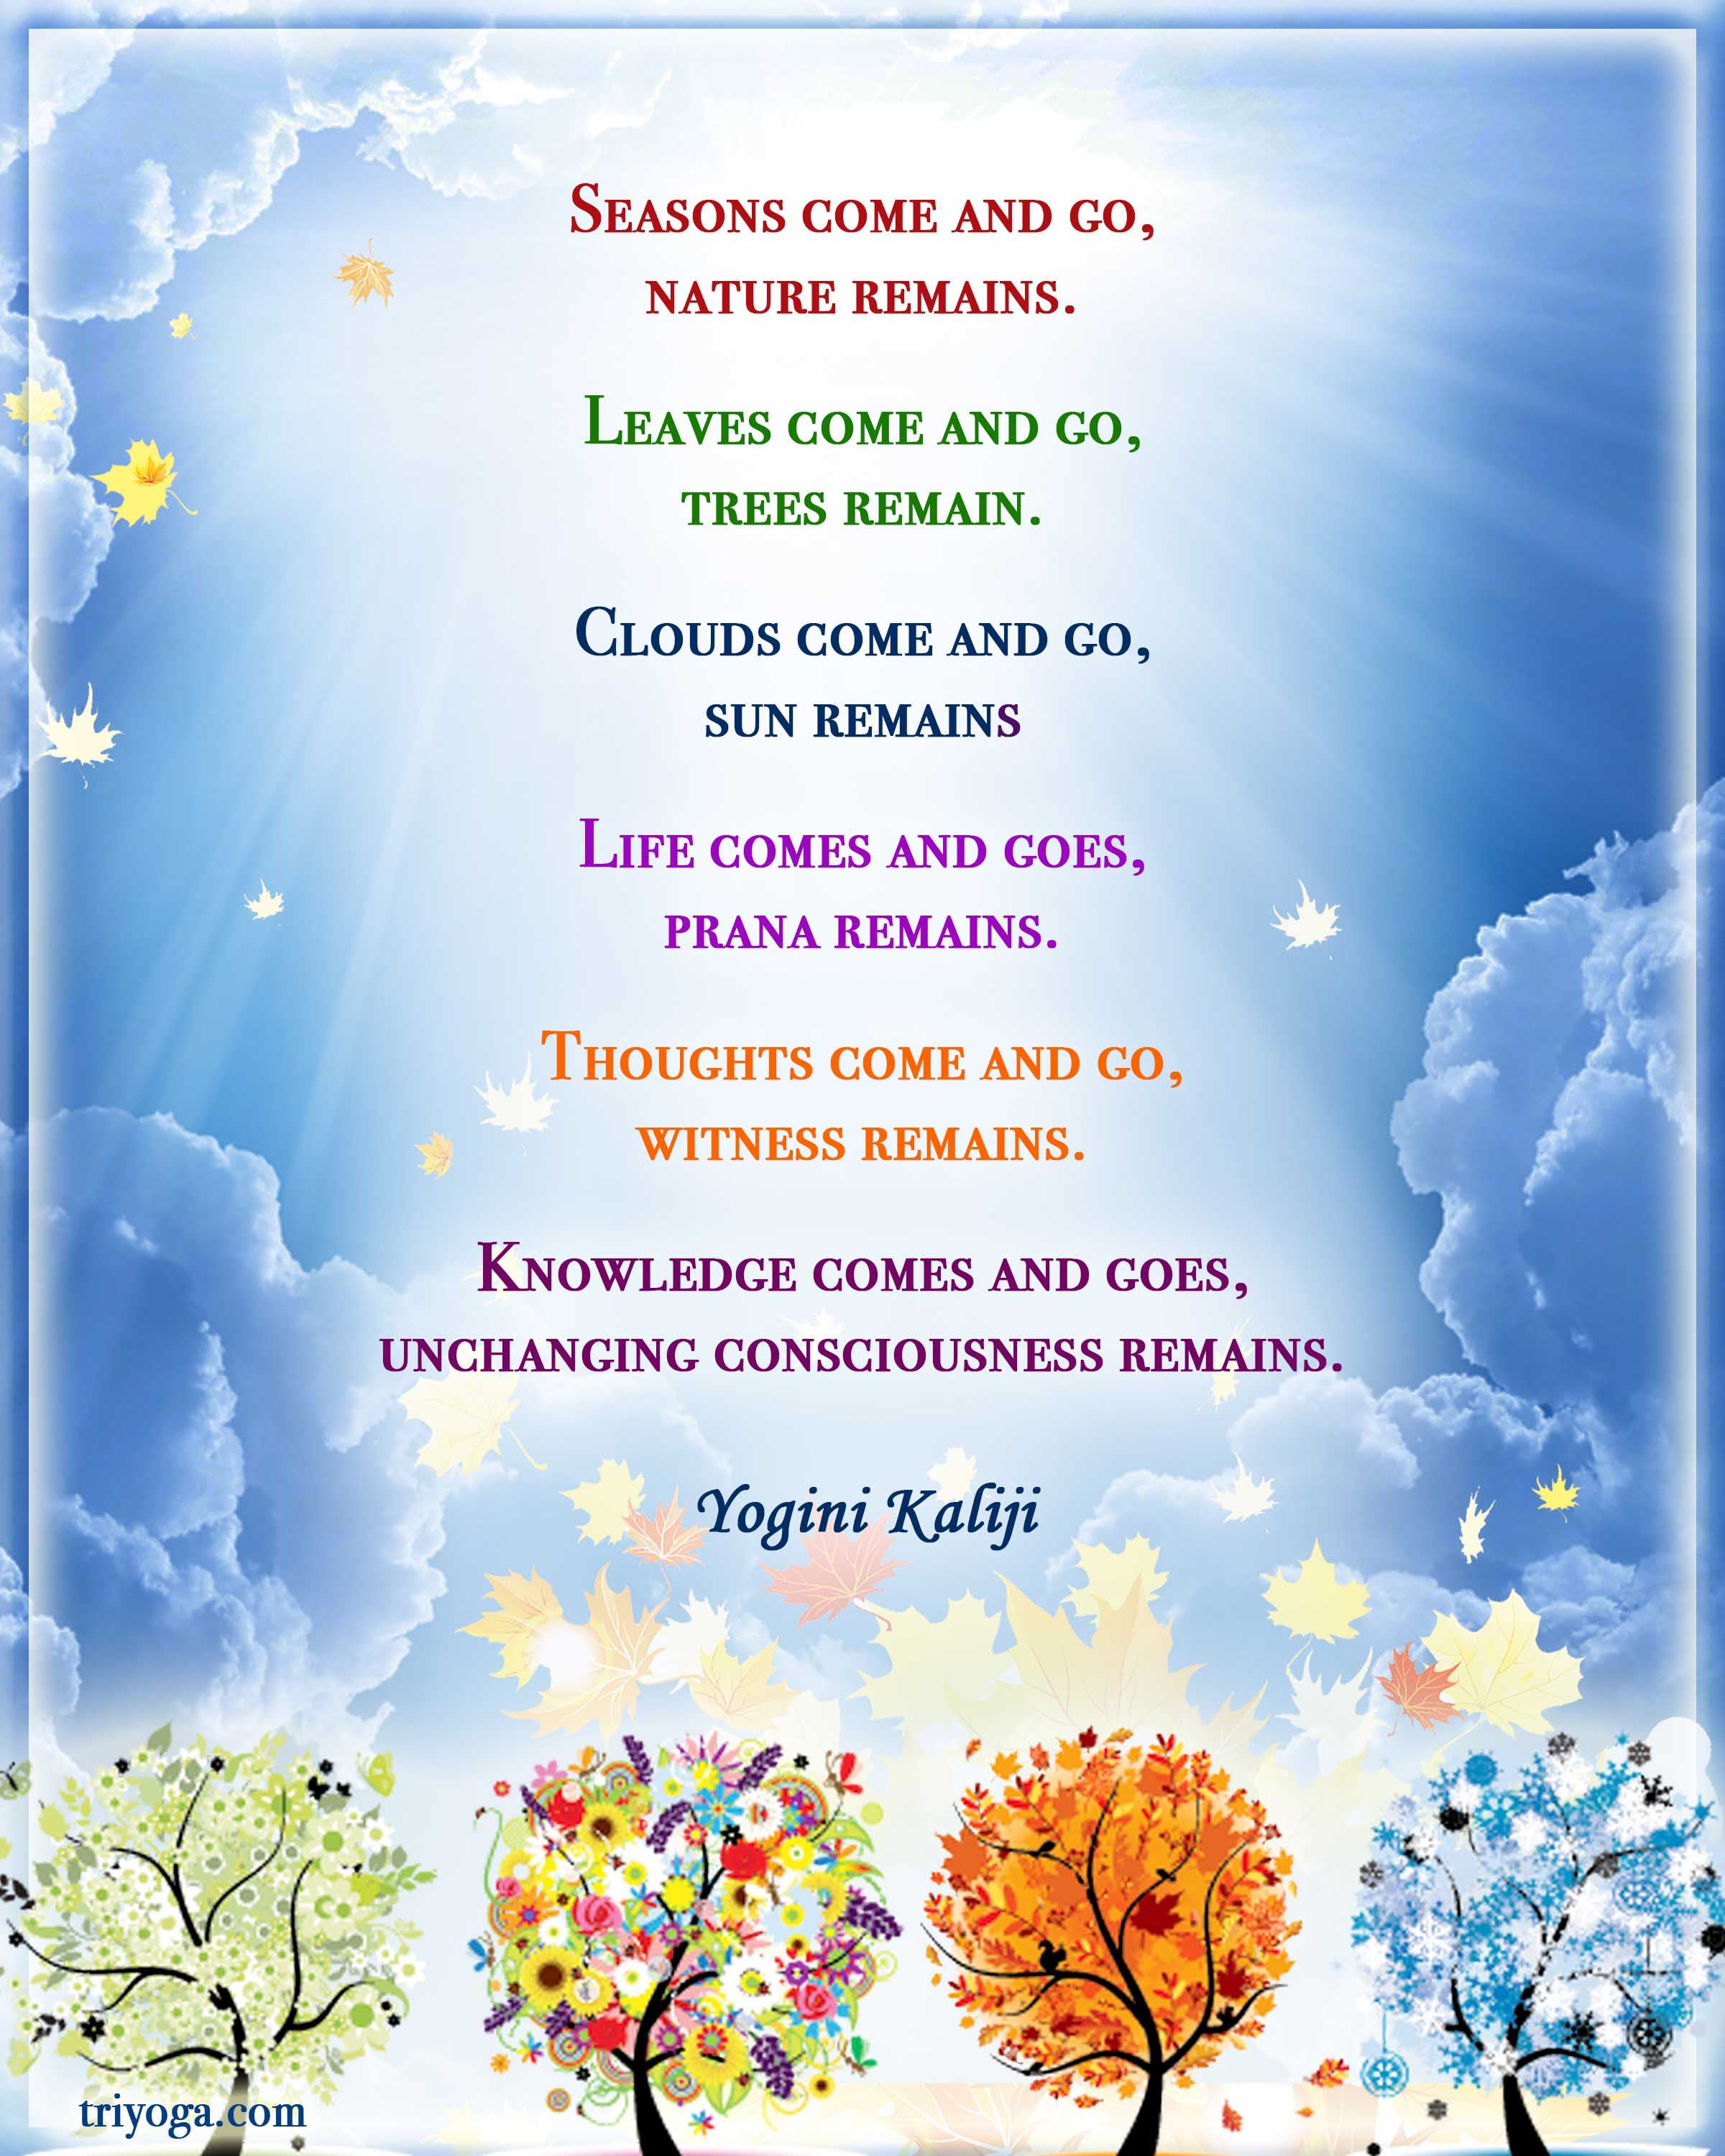 Yogini_Kaliji_Poem_seasons